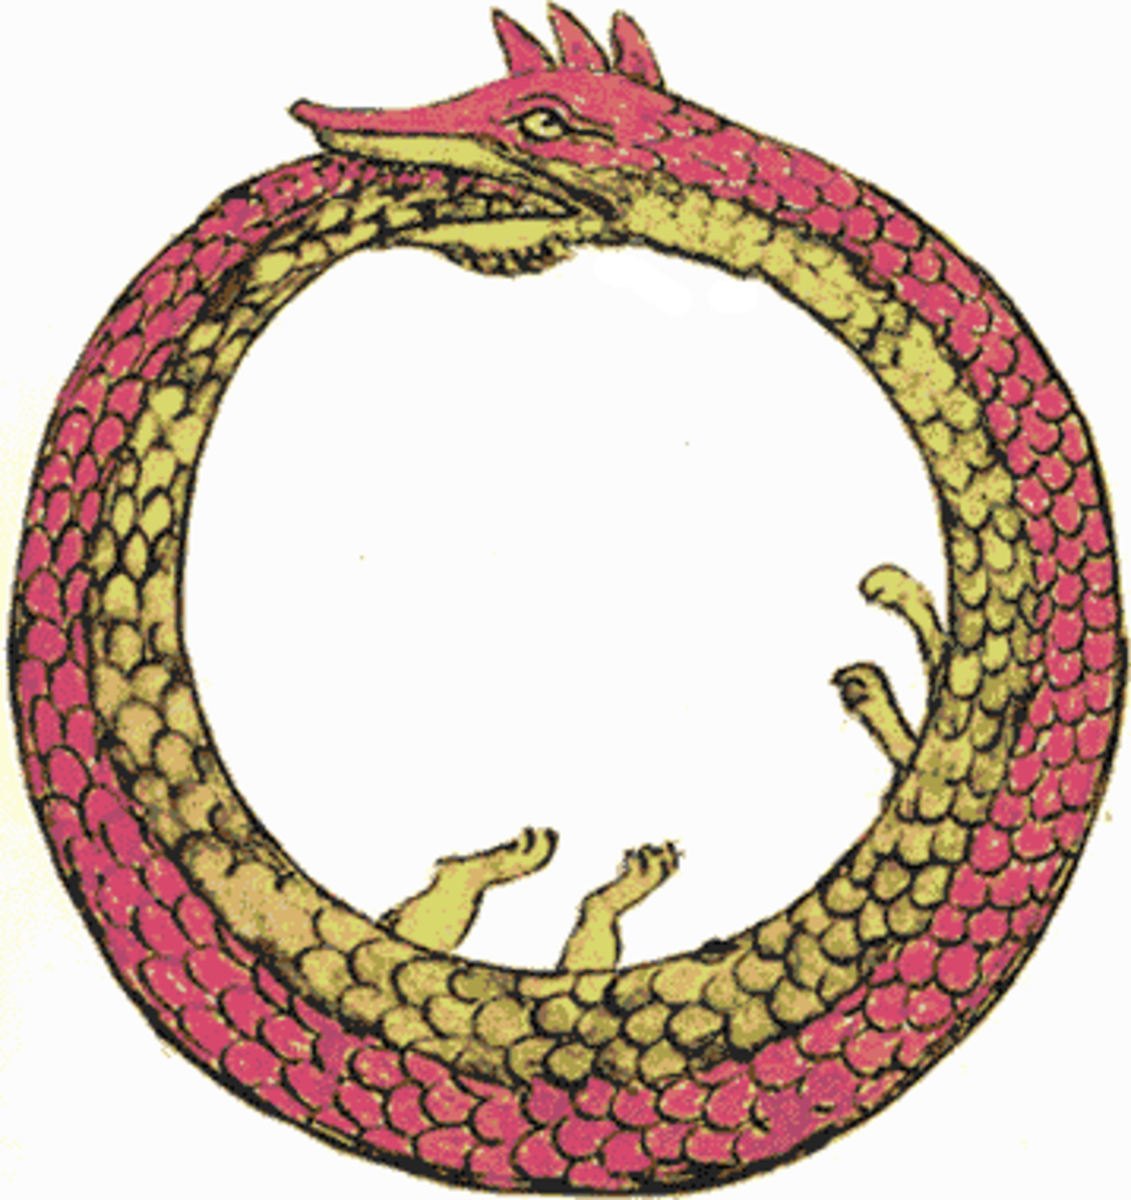 The serpent Ouroboros swallowing its tail.